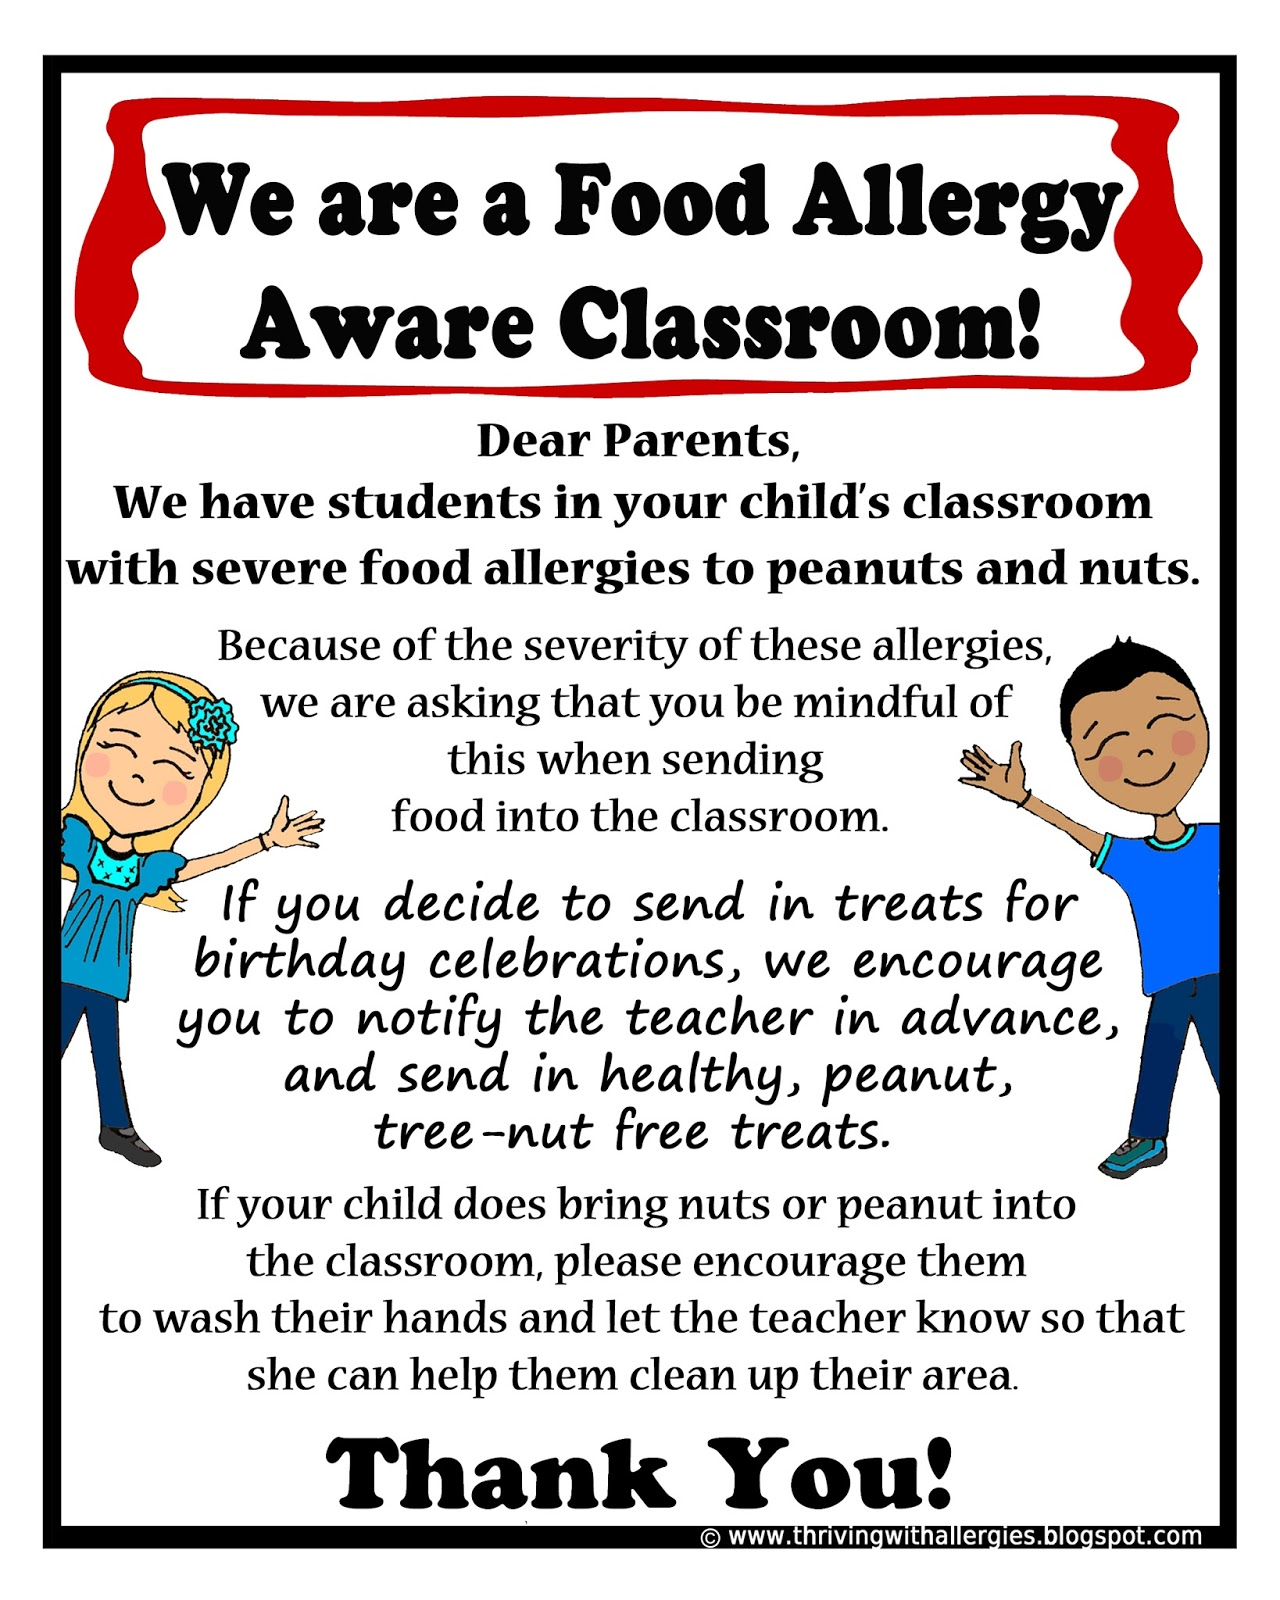 Thriving With Allergies Food Allergy Aware Letter to Parents